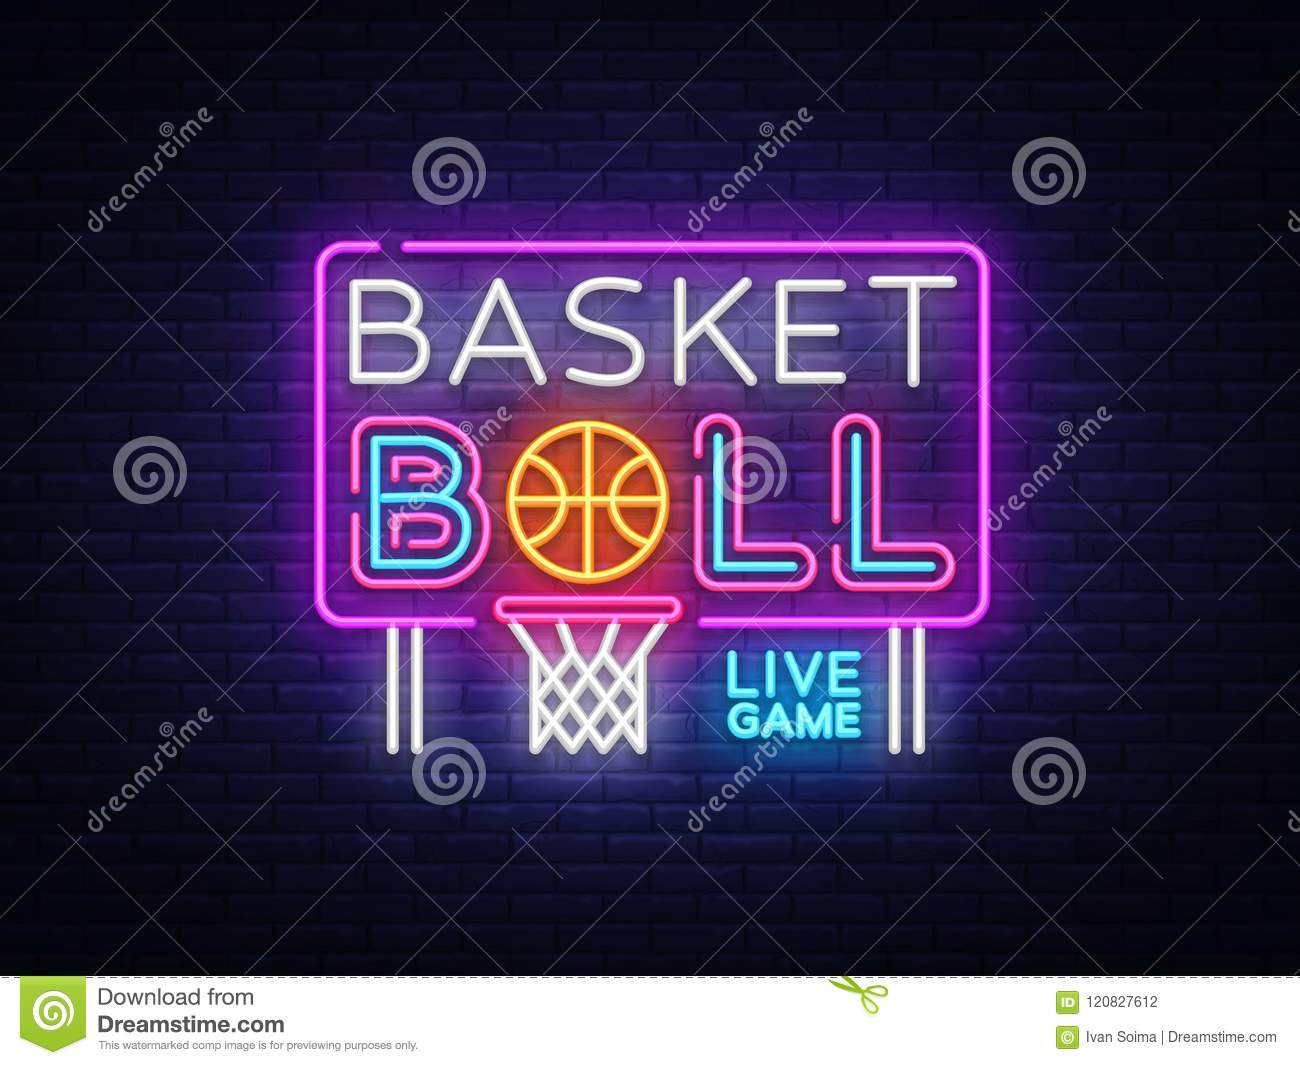 Basketball neon sign vector. Basketball Design template neon sign, light banner, neon signboard, nightly bright